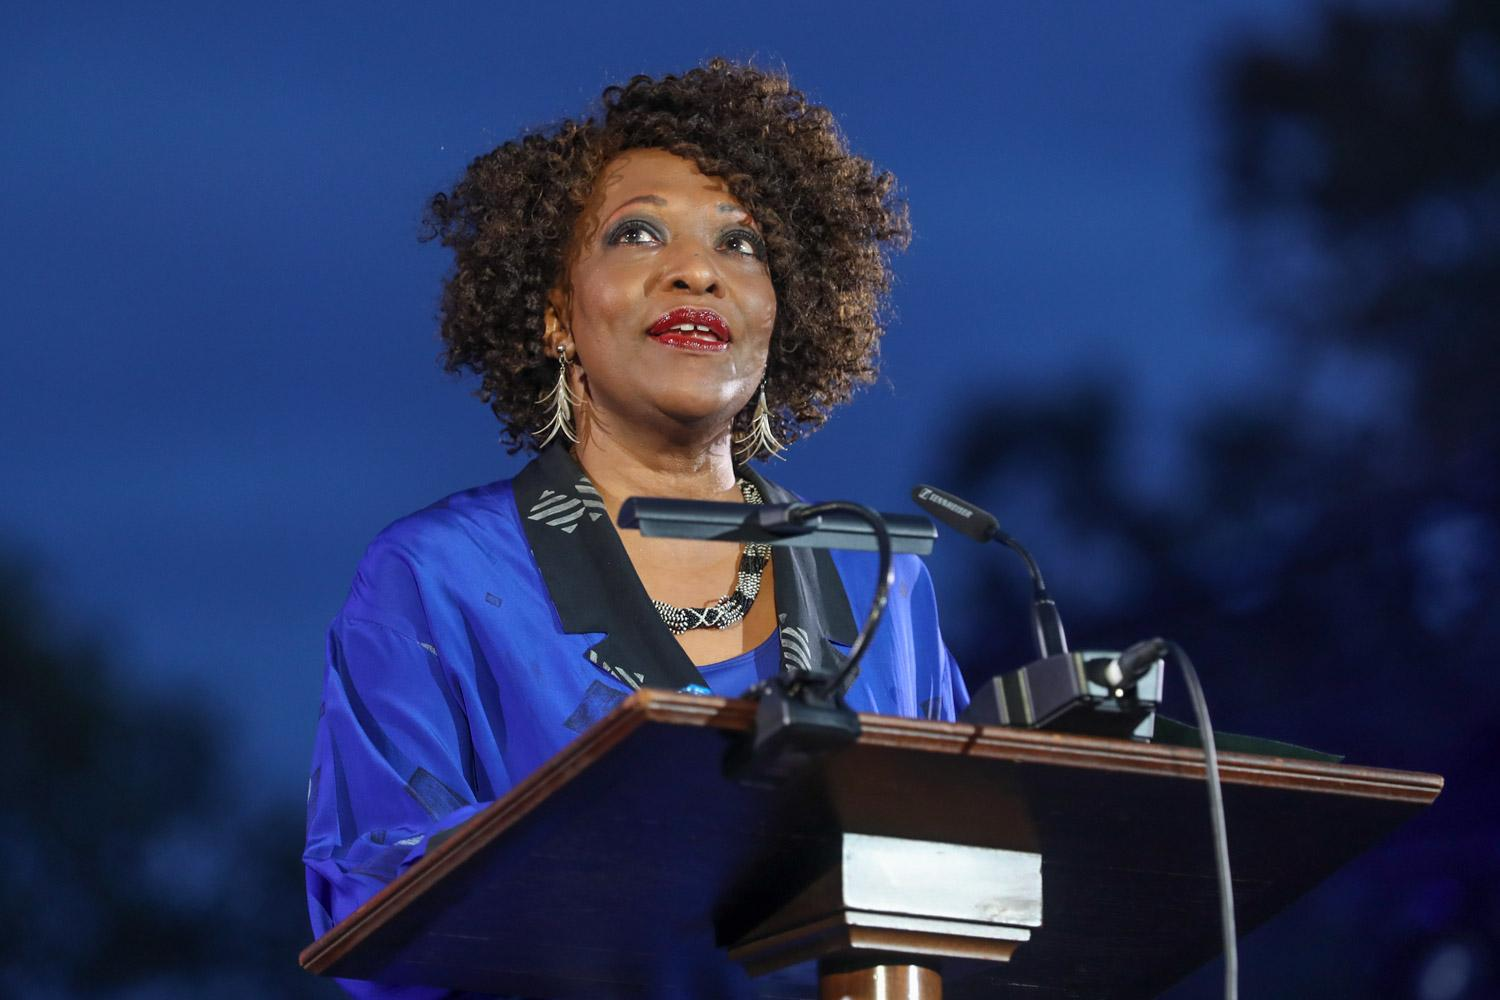 Pulitzer Prize-winning poet Rita Dove, reading her at Friday's Bicentennial Launch Celebration, was recently honored by TIME magazine.